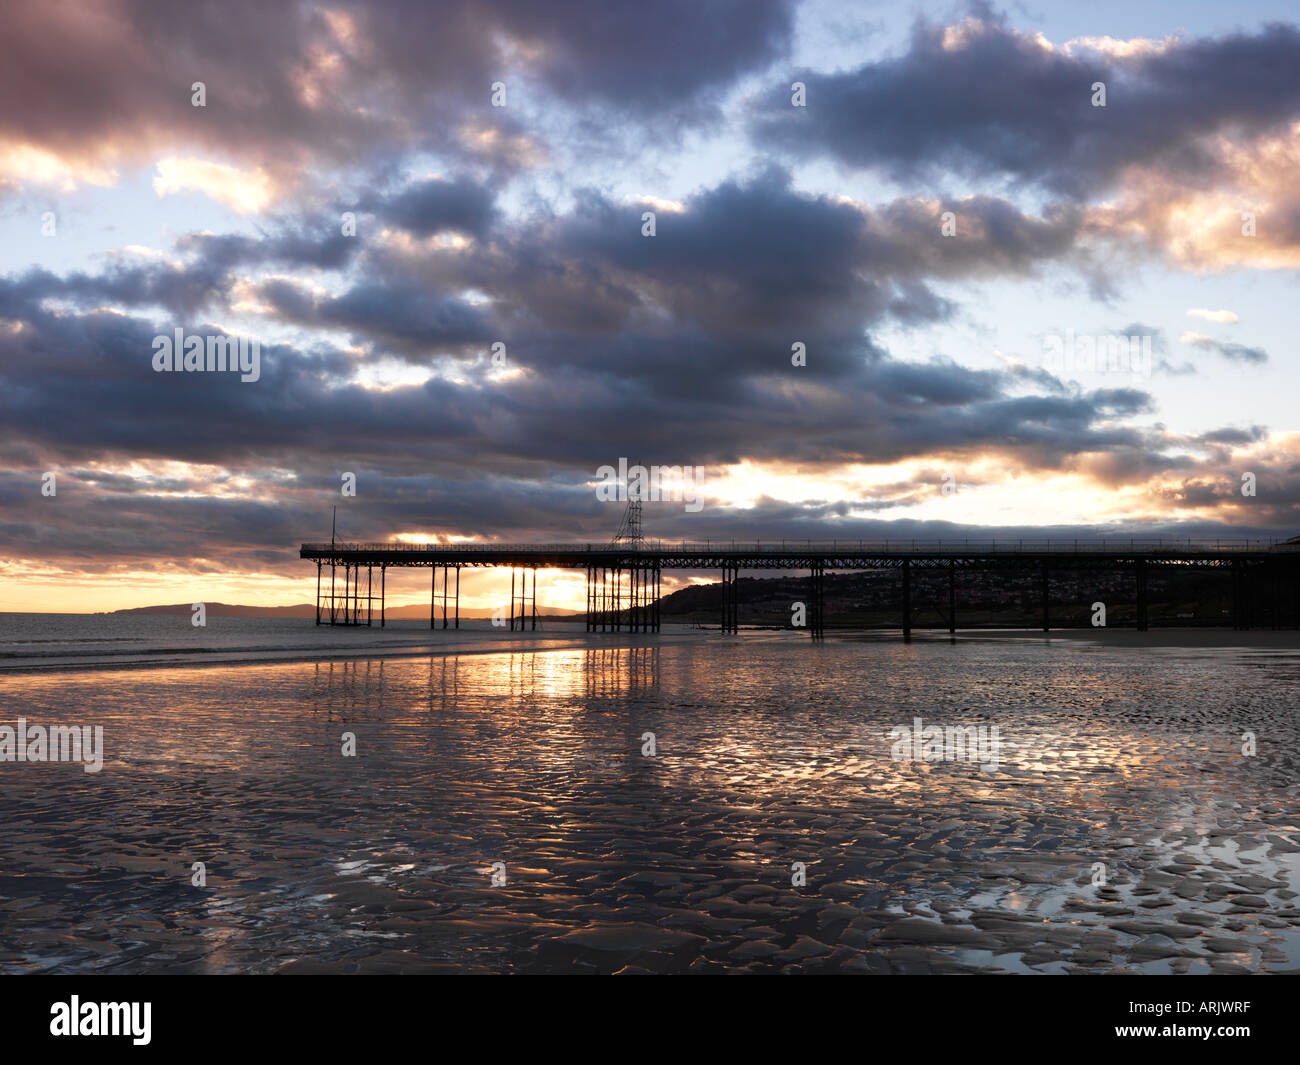 Dramatic Skies at Sunrise at Rhos-on-Sea Beach and Pier, Wales, Summer 2006 - Stock Image